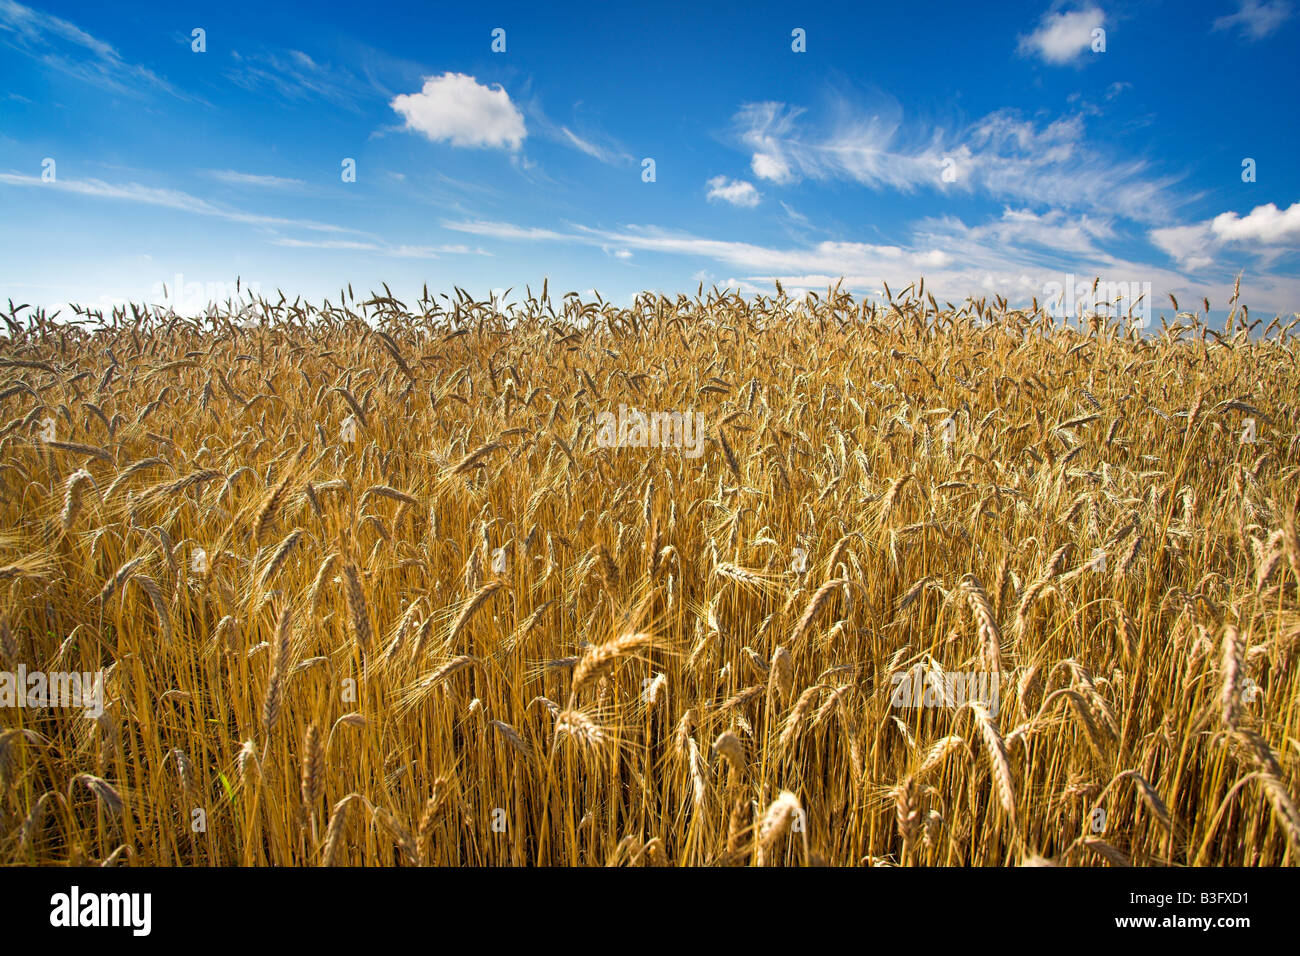 The field of wheat - Stock Image